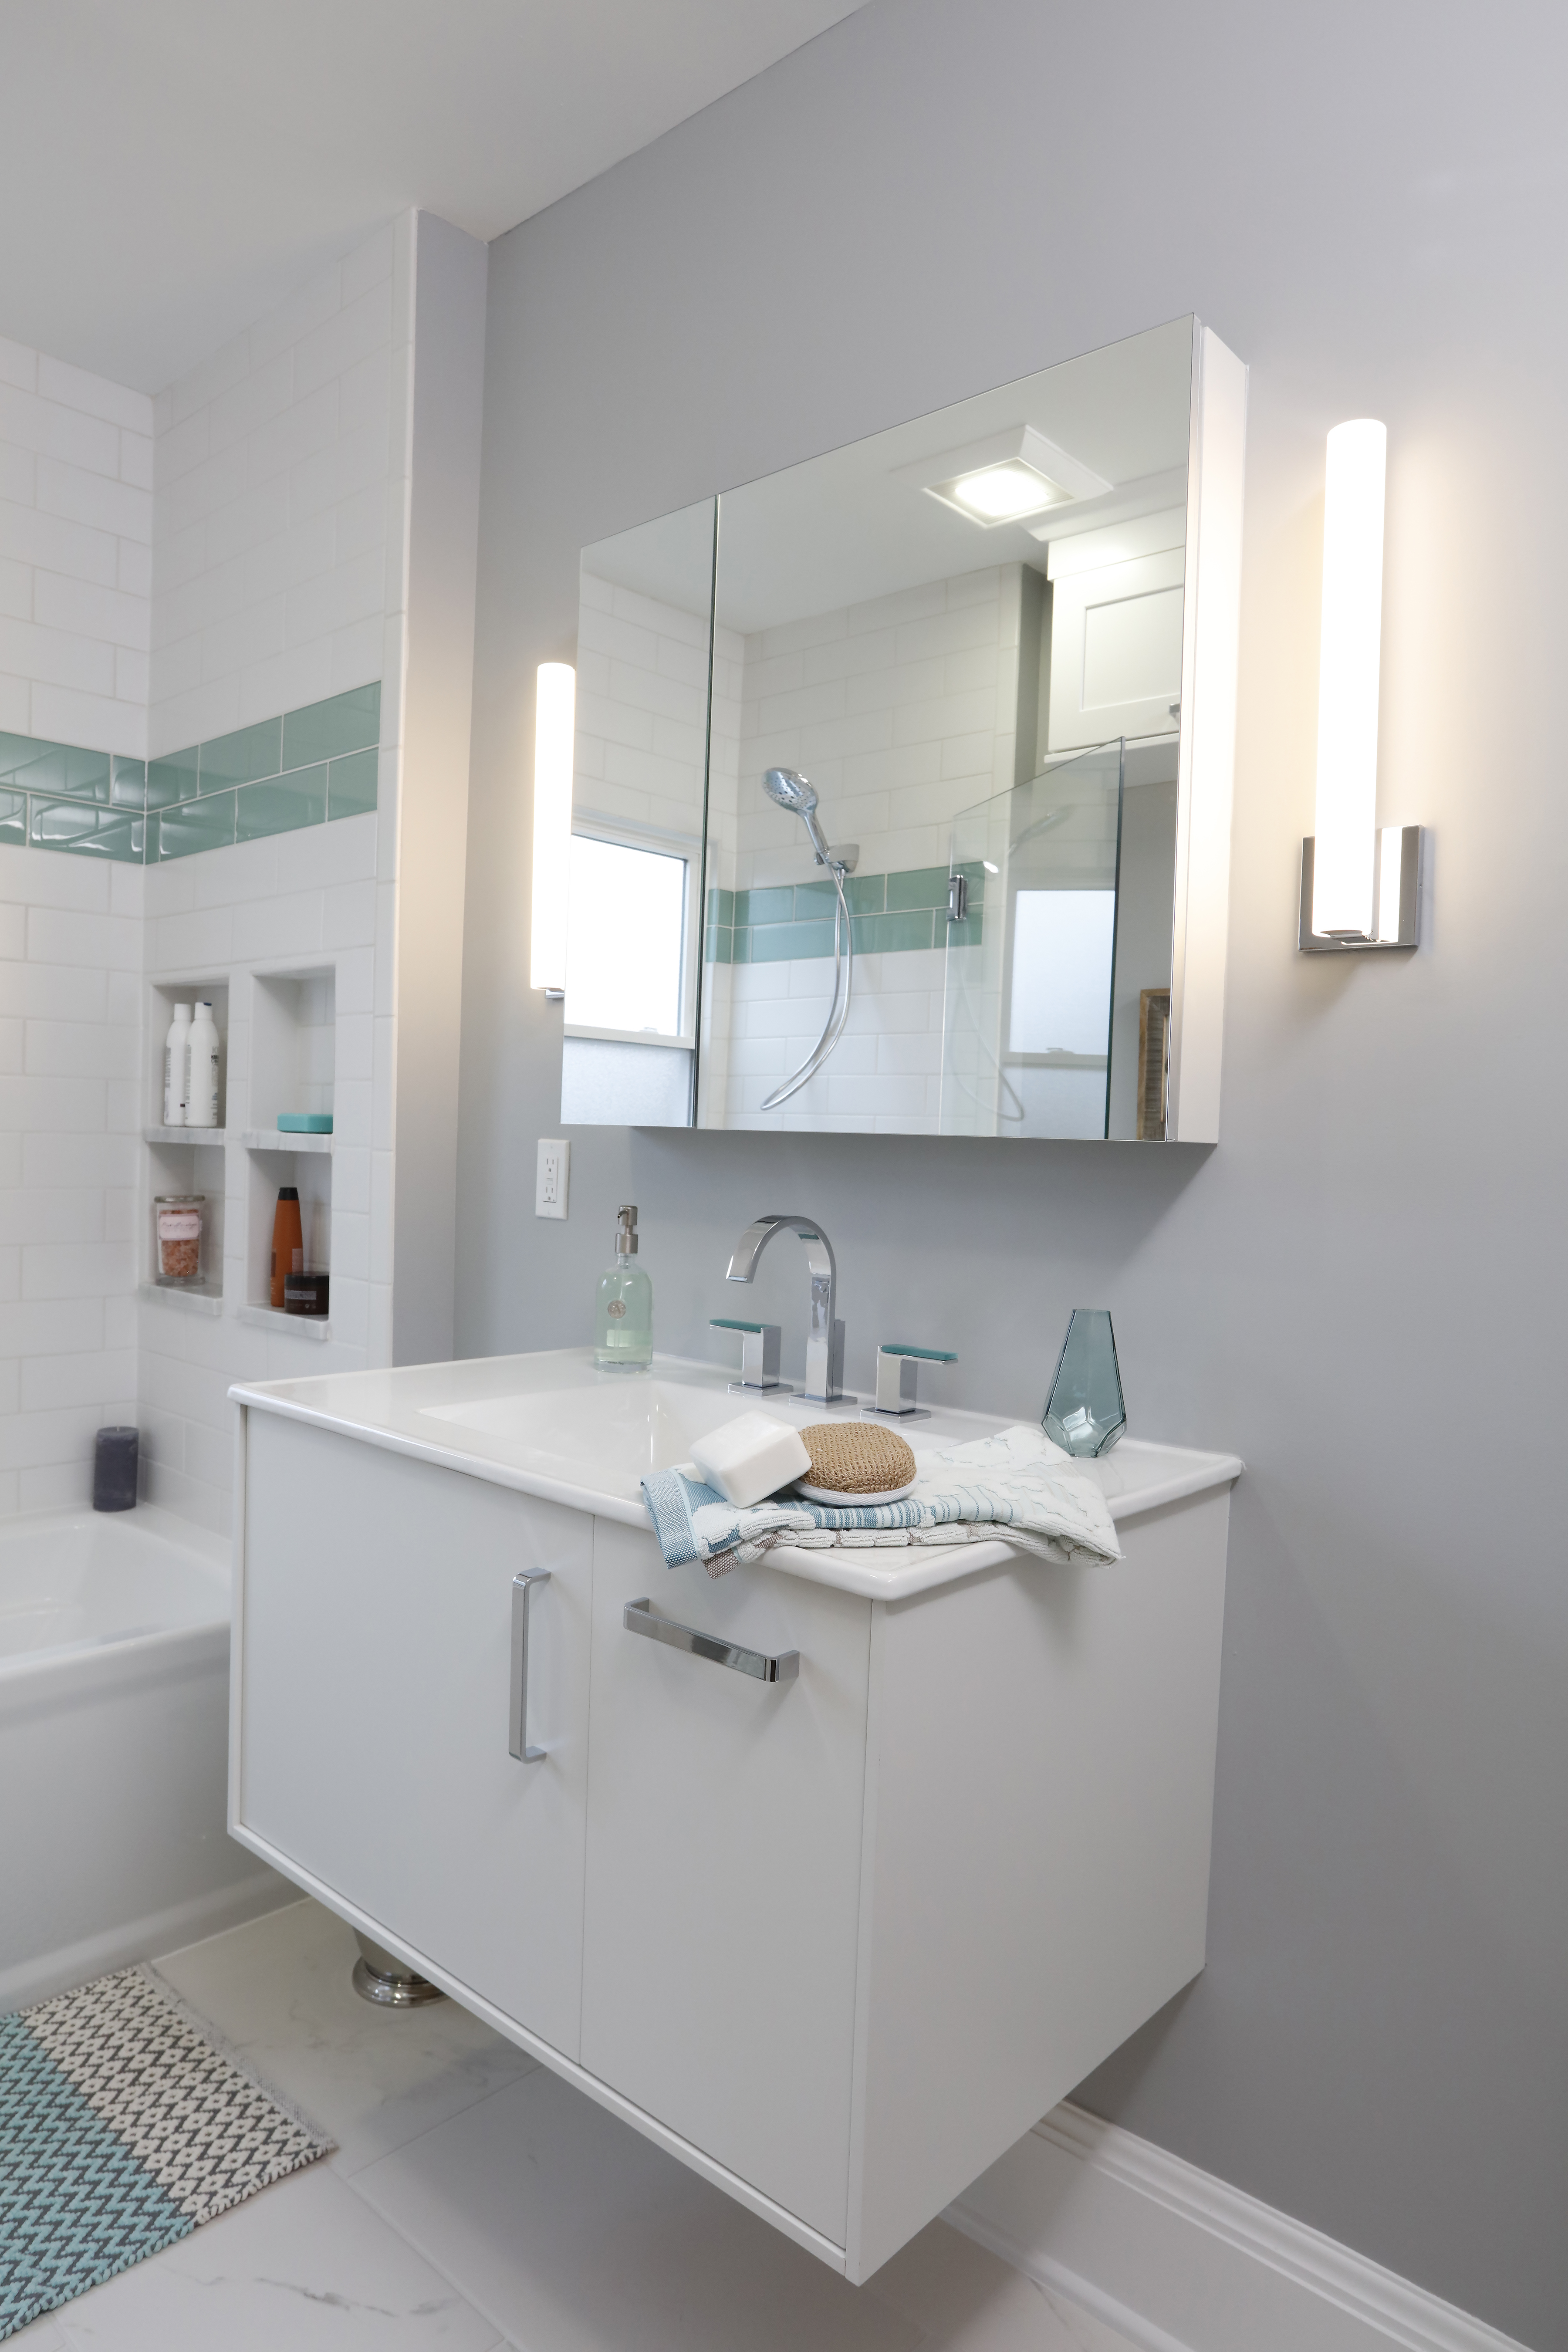 Dover Project Feature Contractor Of The Year Award First Place - Bathroom remodel what to do first